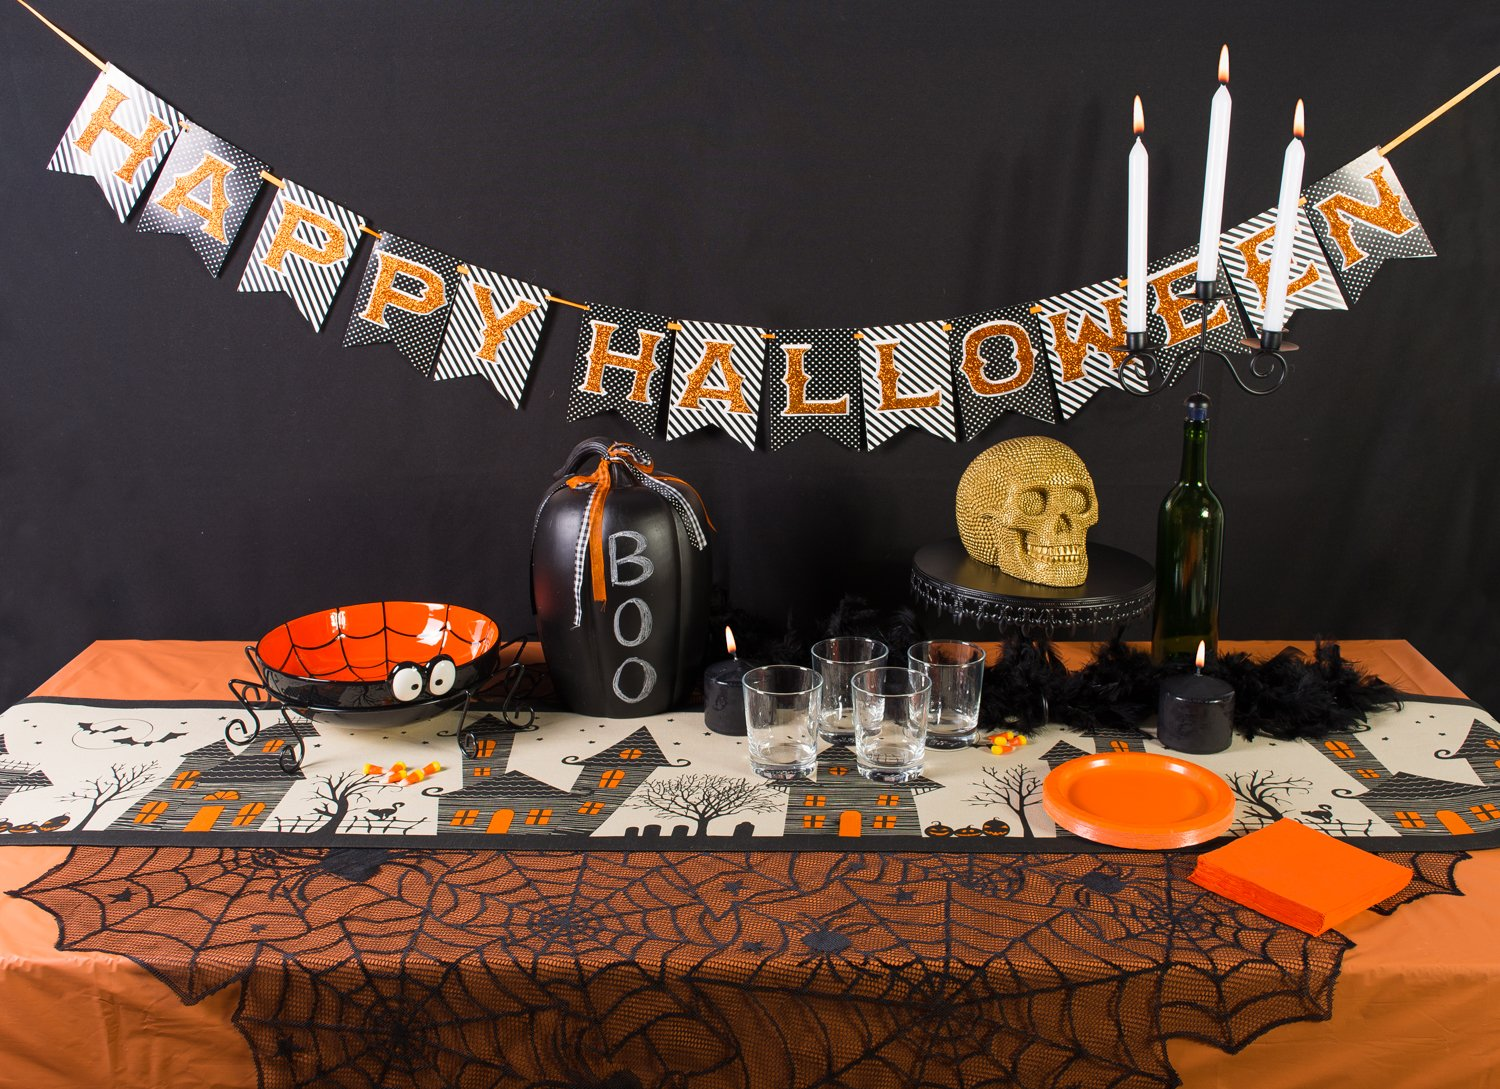 amazoncom dii 100 cotton spooky scary haunted house 14 x 72 halloween table runner home kitchen - Halloween Table